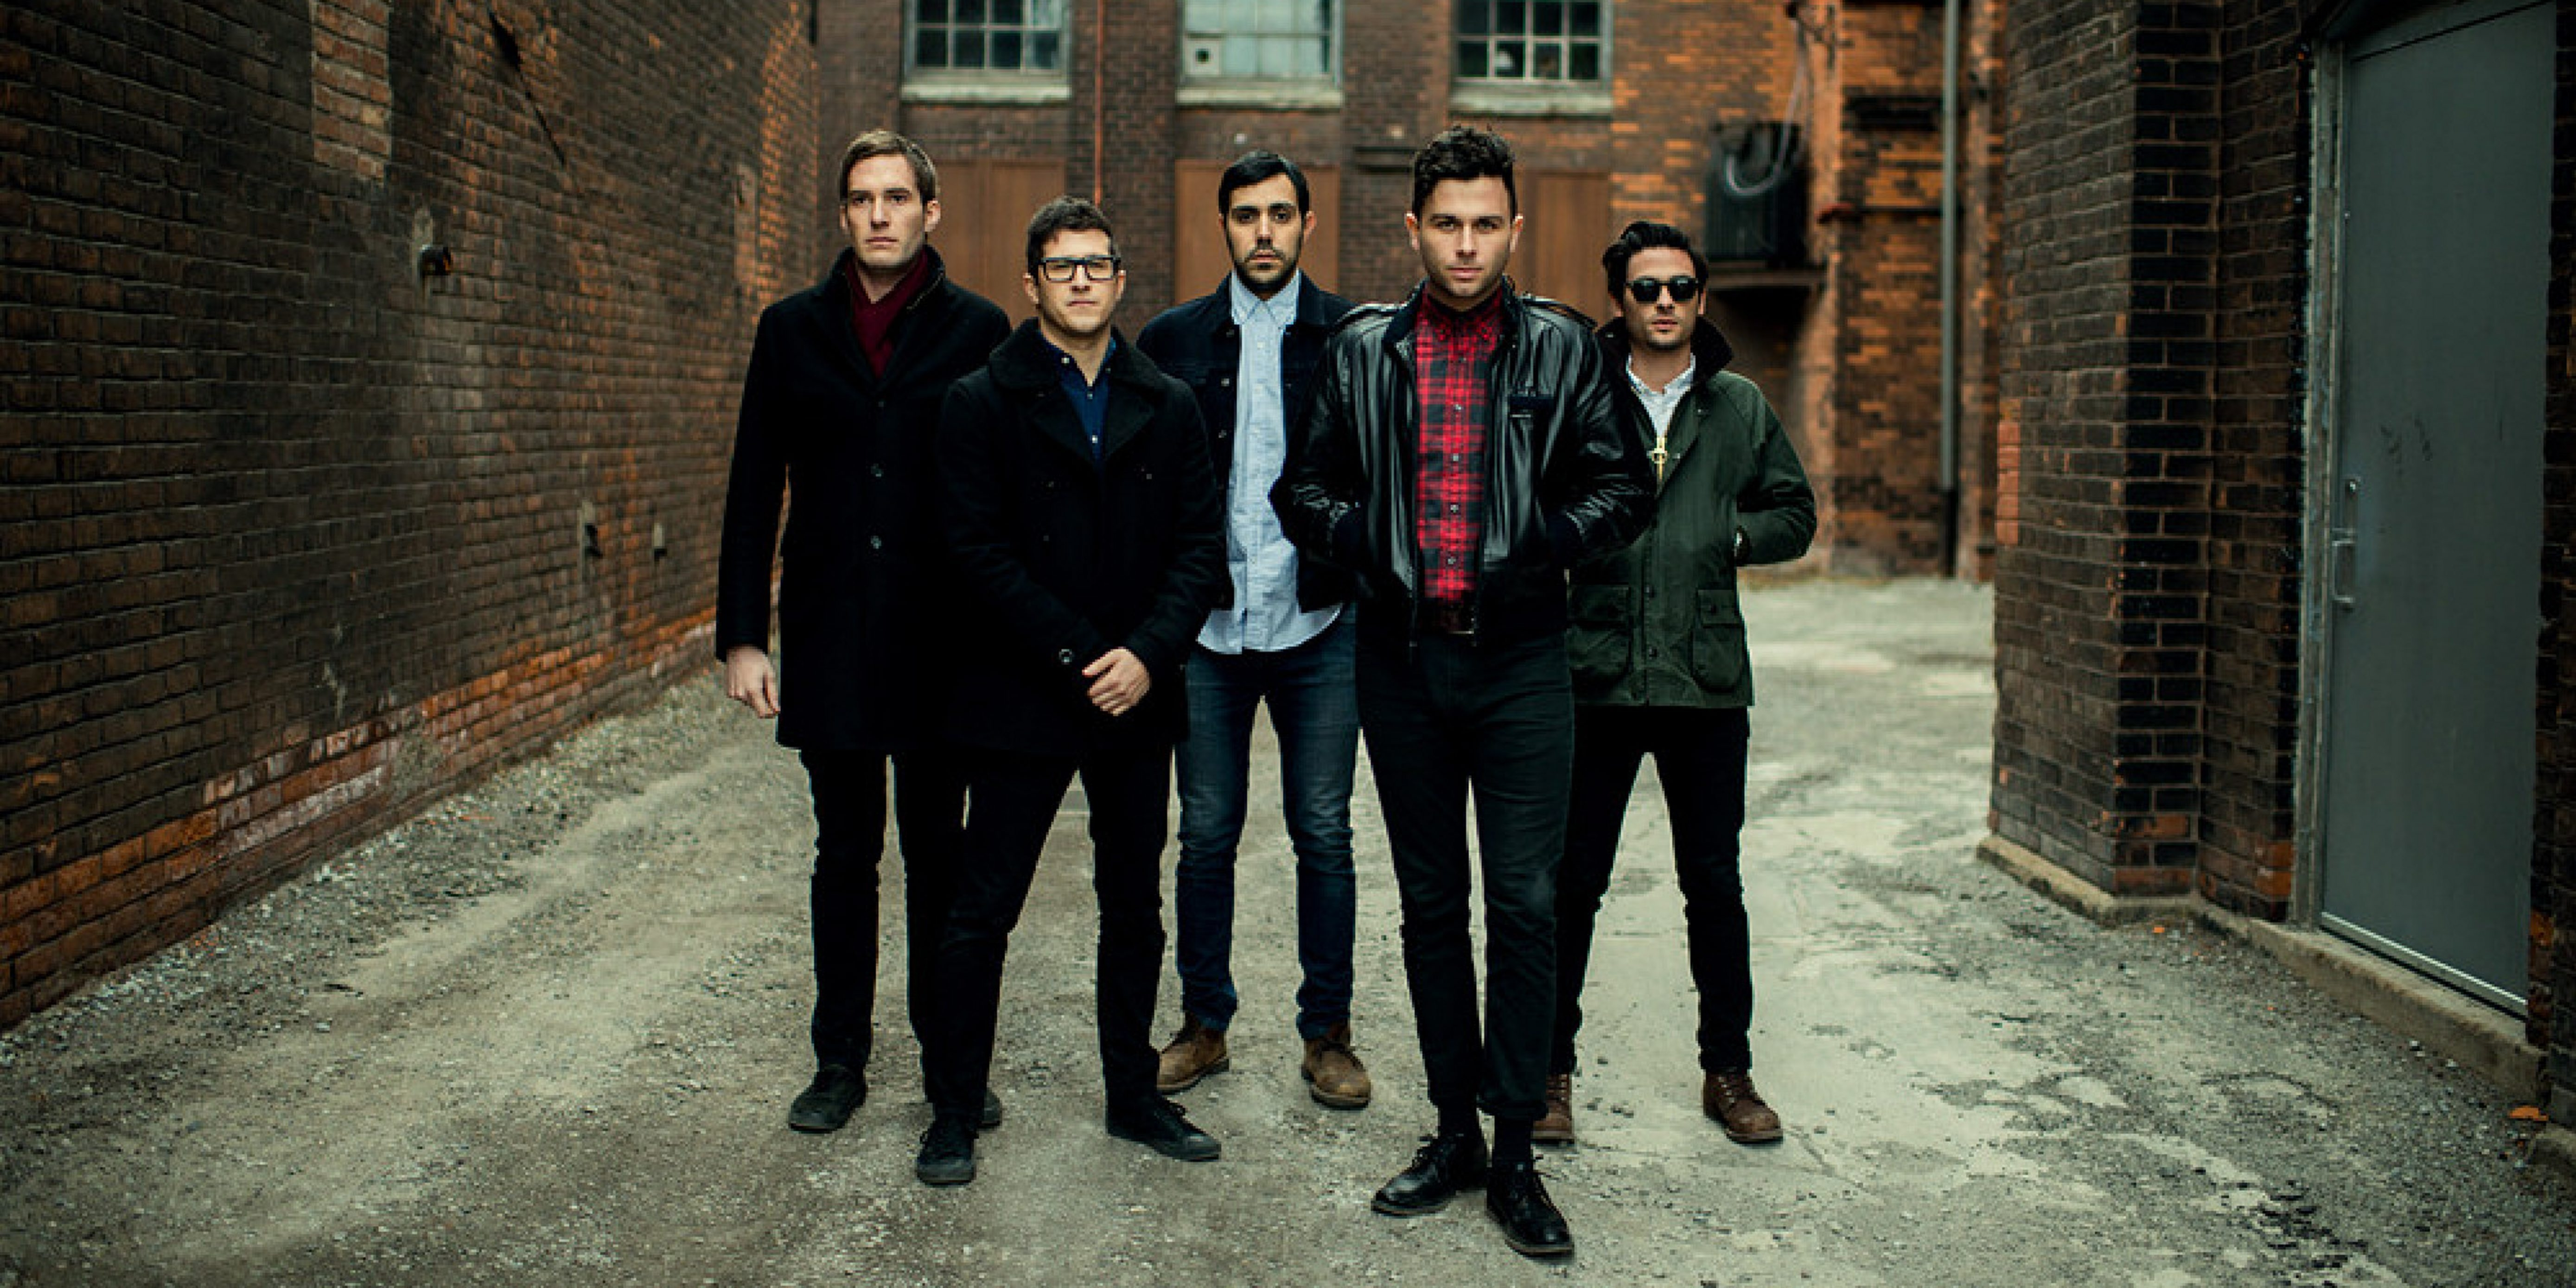 The Arkells play a sold-out show Friday in the Town Ballroom.